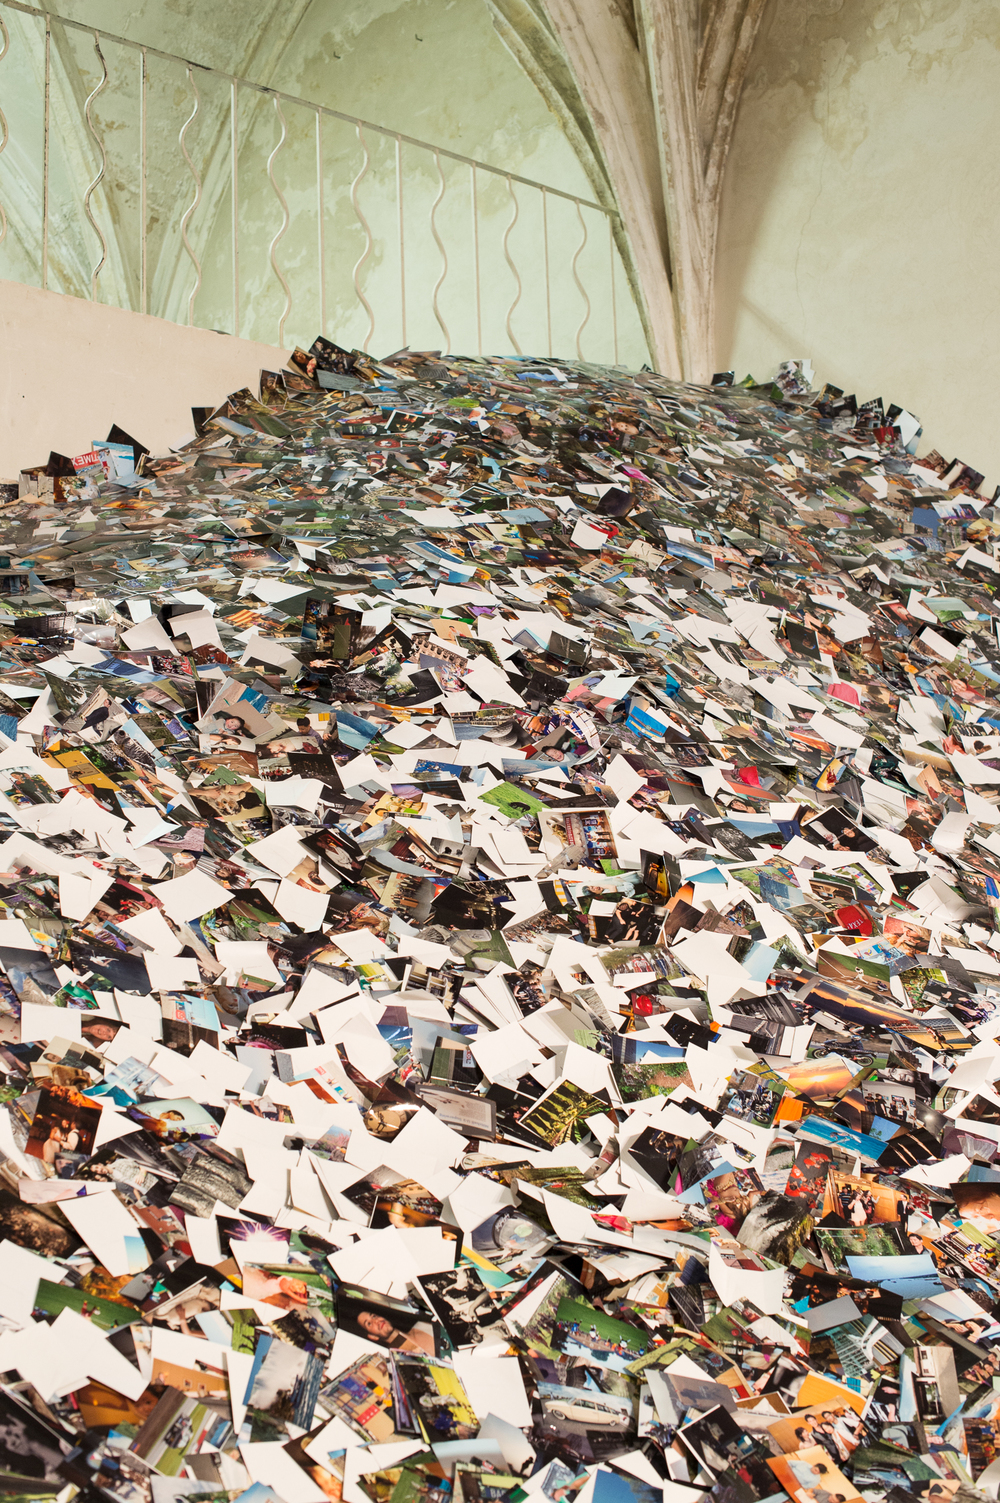 Photograph taken of an installation by  Erik Kessels - 24HRS of Photos  - at the Rencontres d'Arles, 2013